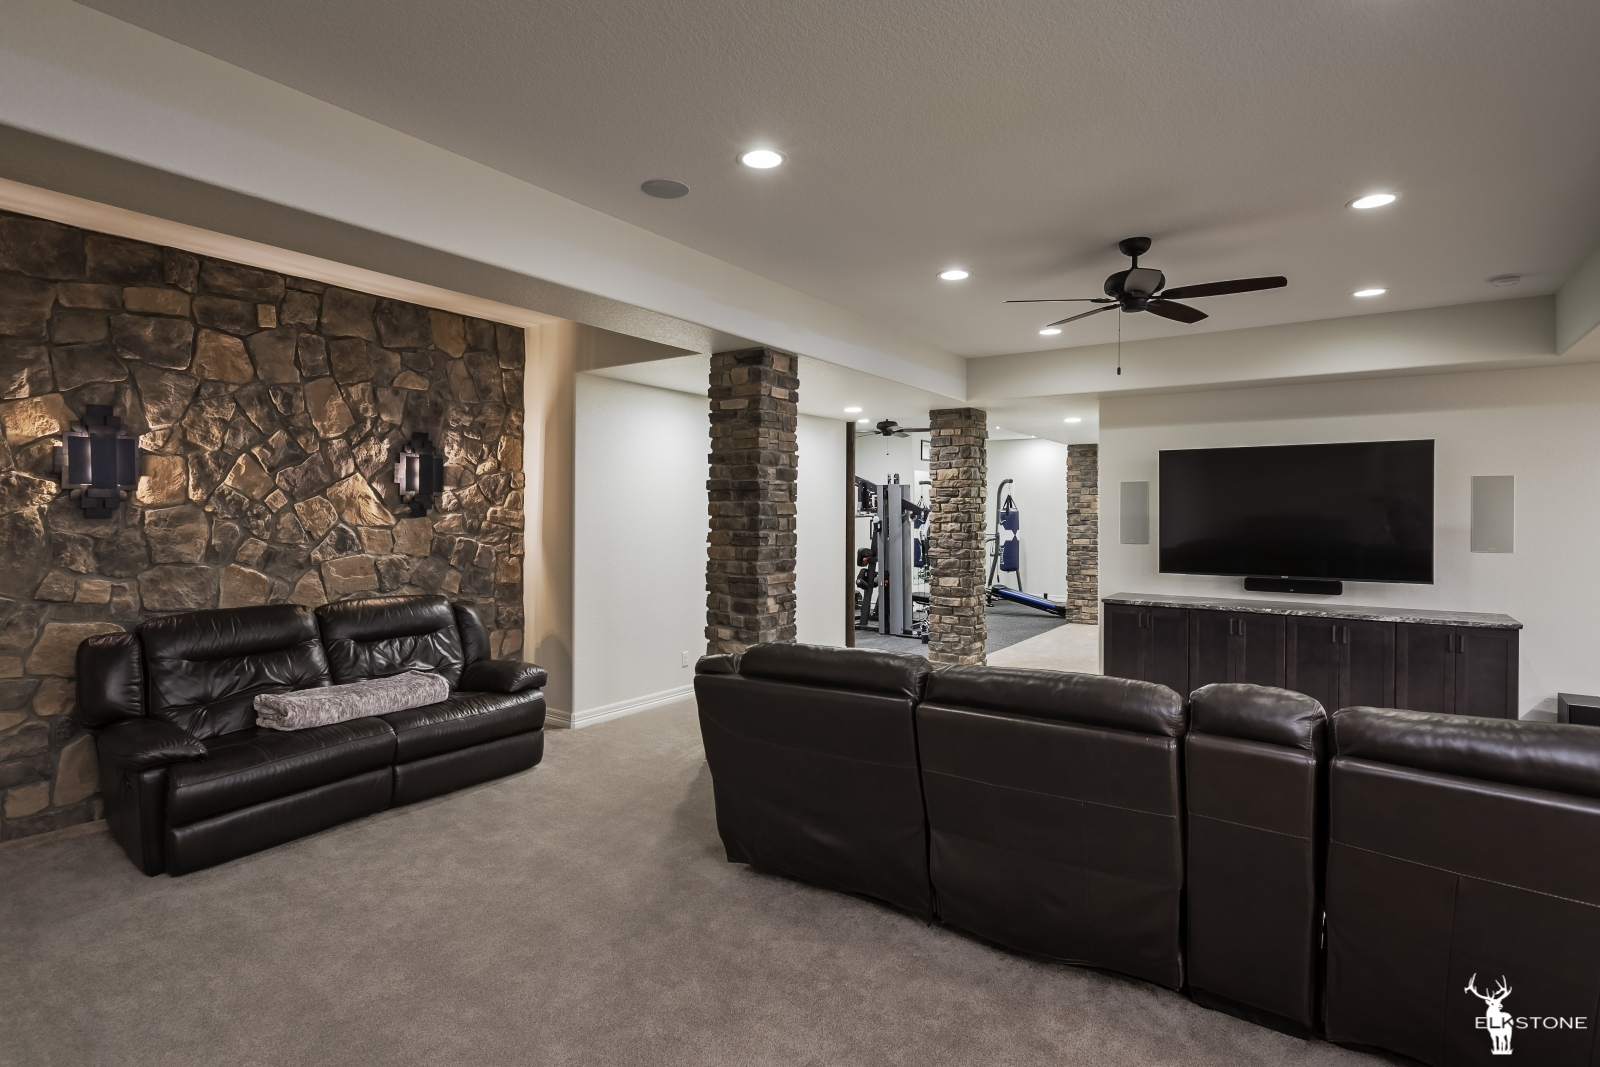 3044ElkCanyon-Media Room-01